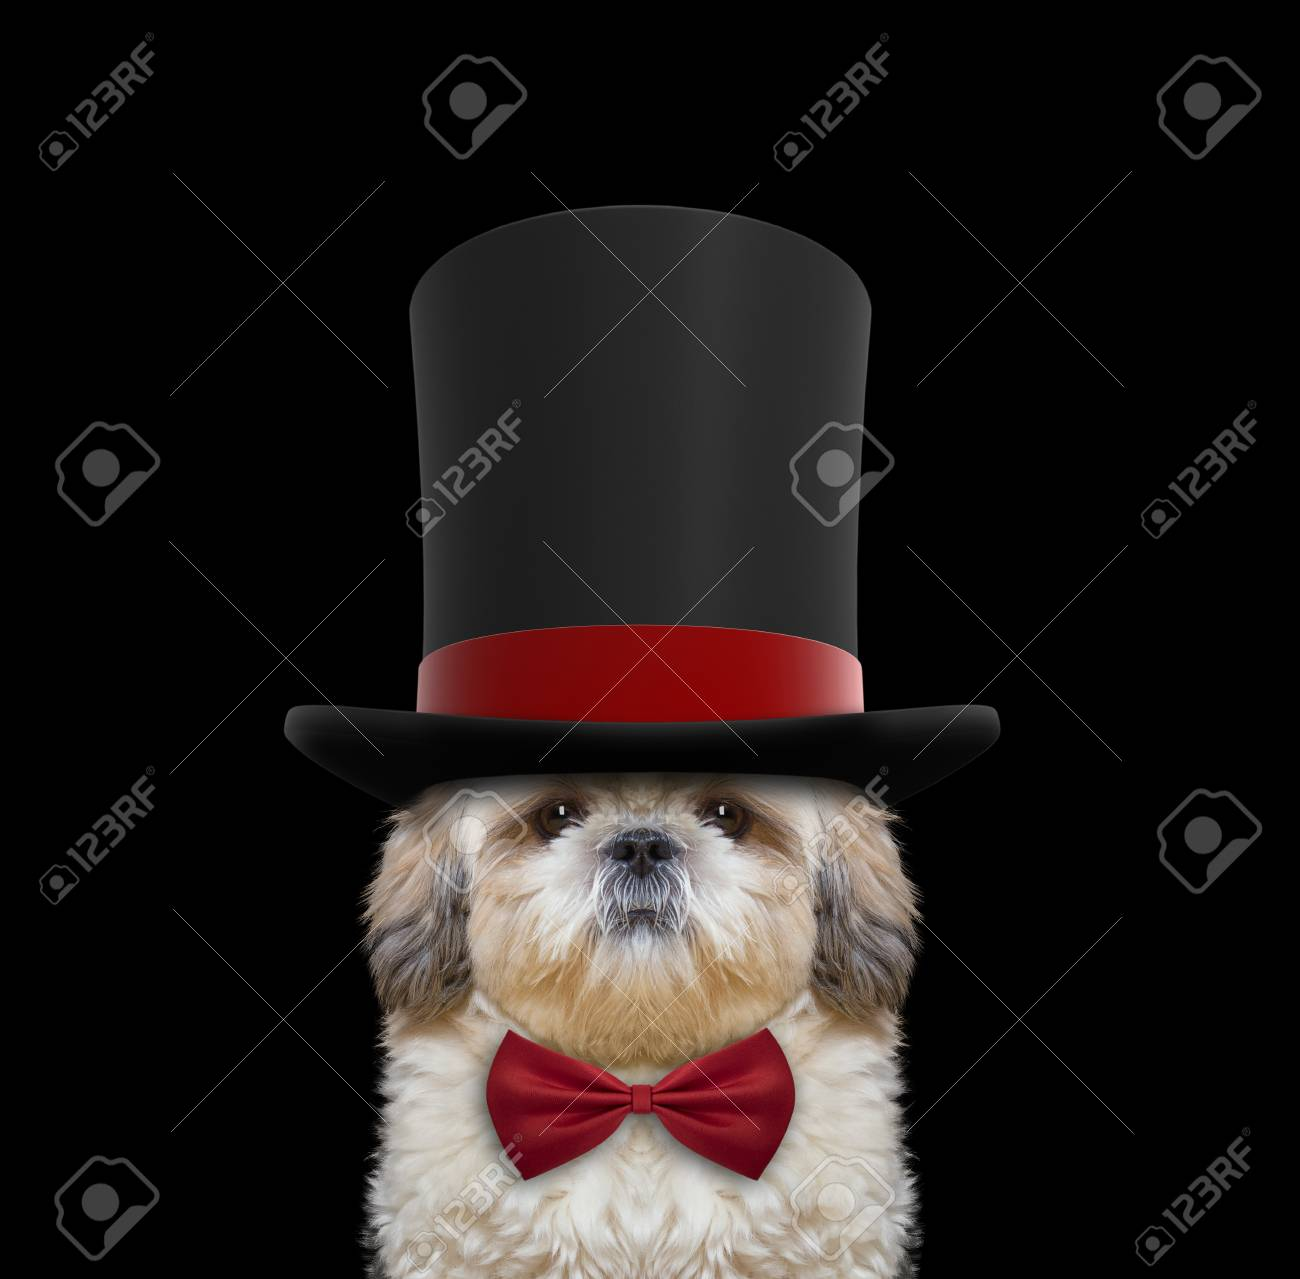 Best Necktie Bow Adorable Dog - 63596521-cute-dog-in-a-high-hat-cylinder-and-necktie-isolated-on-black  You Should Have_315882  .jpg